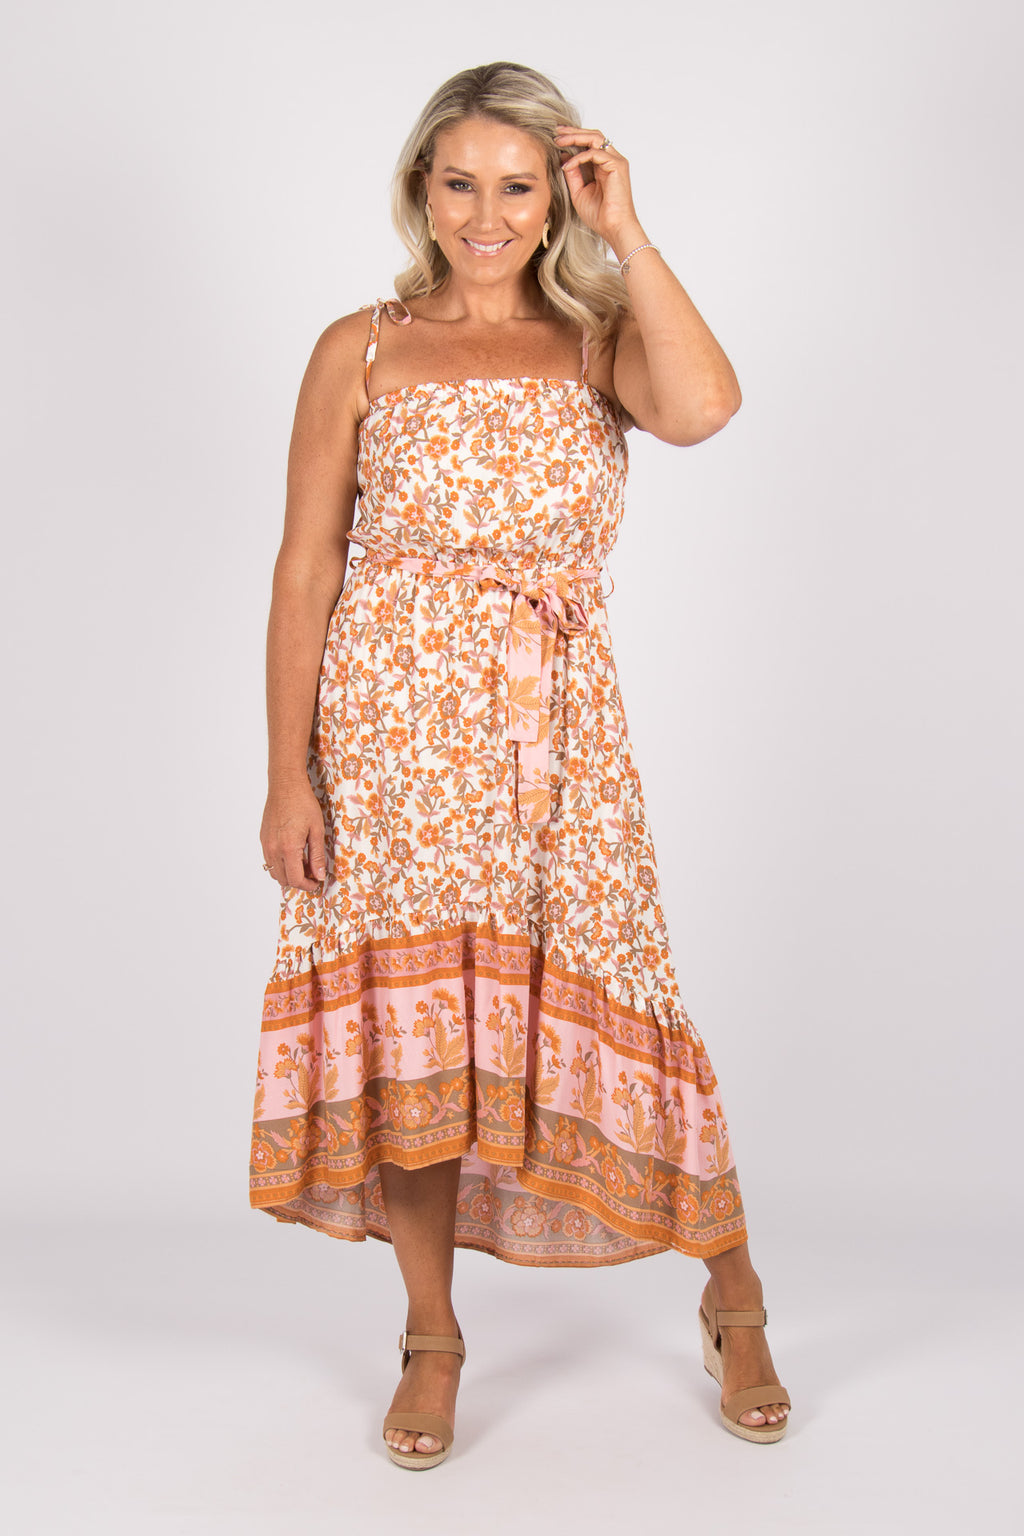 Everly Dress in Orange